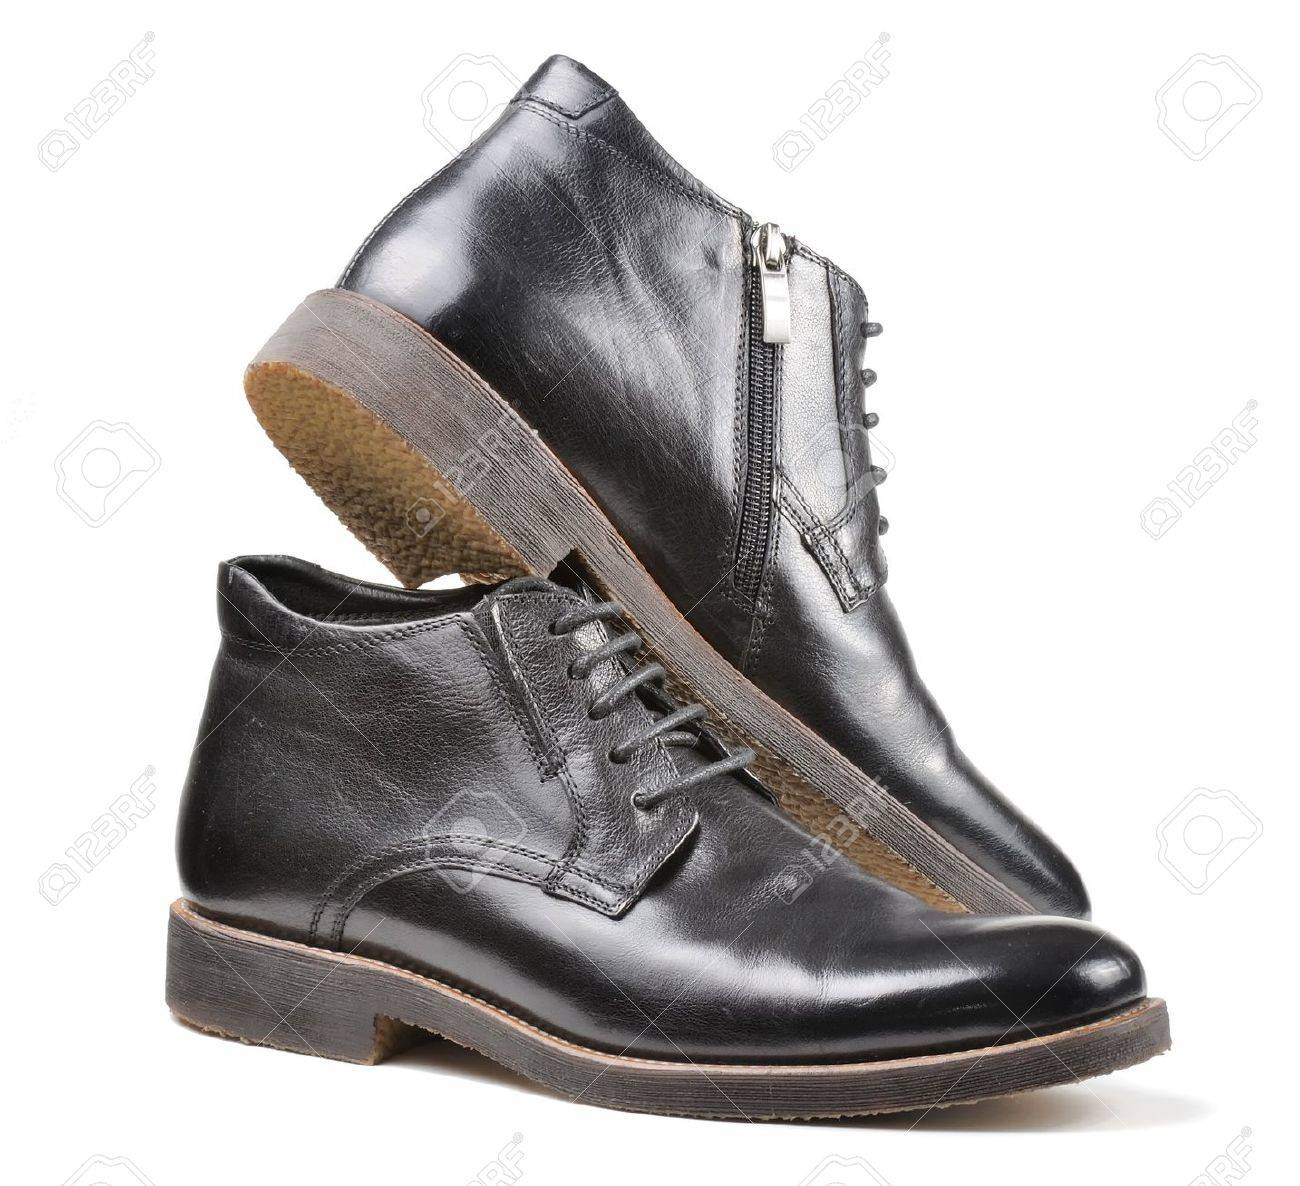 Men Classic Black Leather Shoes Isolated on White Background Stock Photo - 12335956